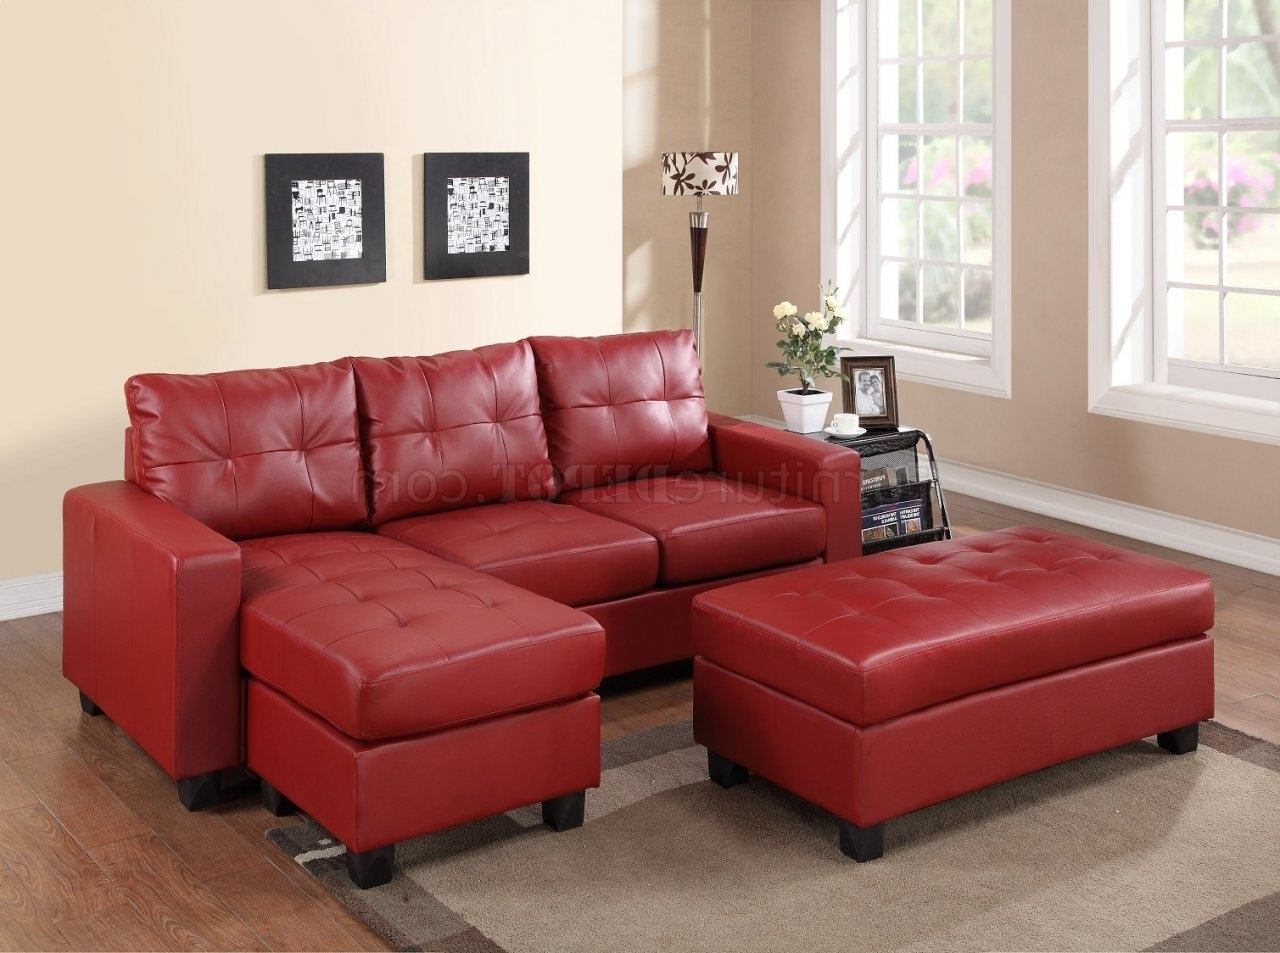 Small Red Leather Sectional Sofas Regarding 2017 2511 Sectional Sofa Set In Red Bonded Leather Match Pu (View 2 of 15)